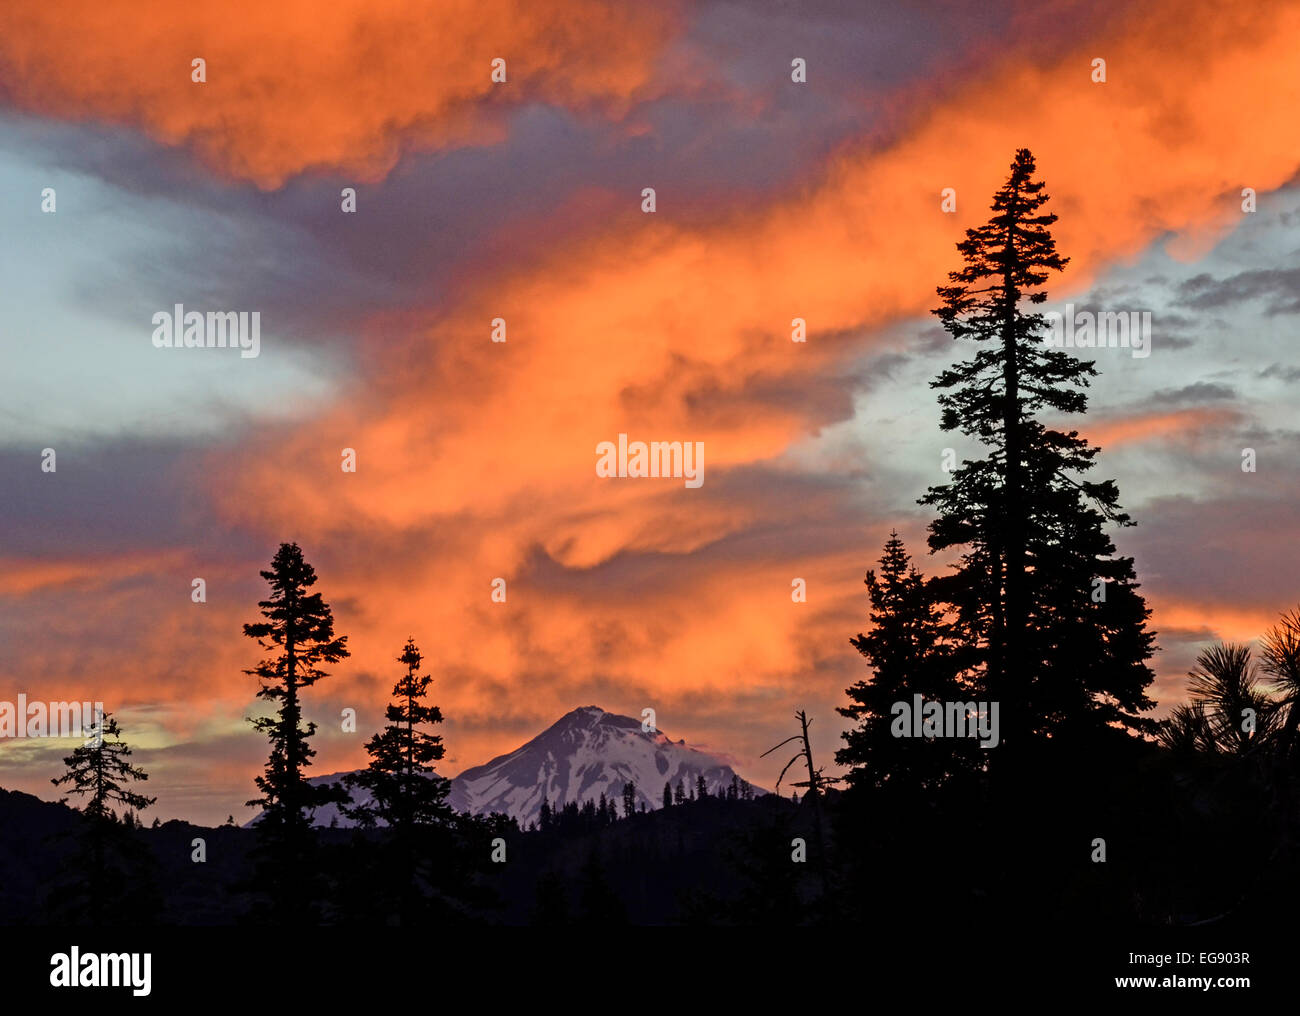 Mount Shasta dawn beauty. - Stock Image